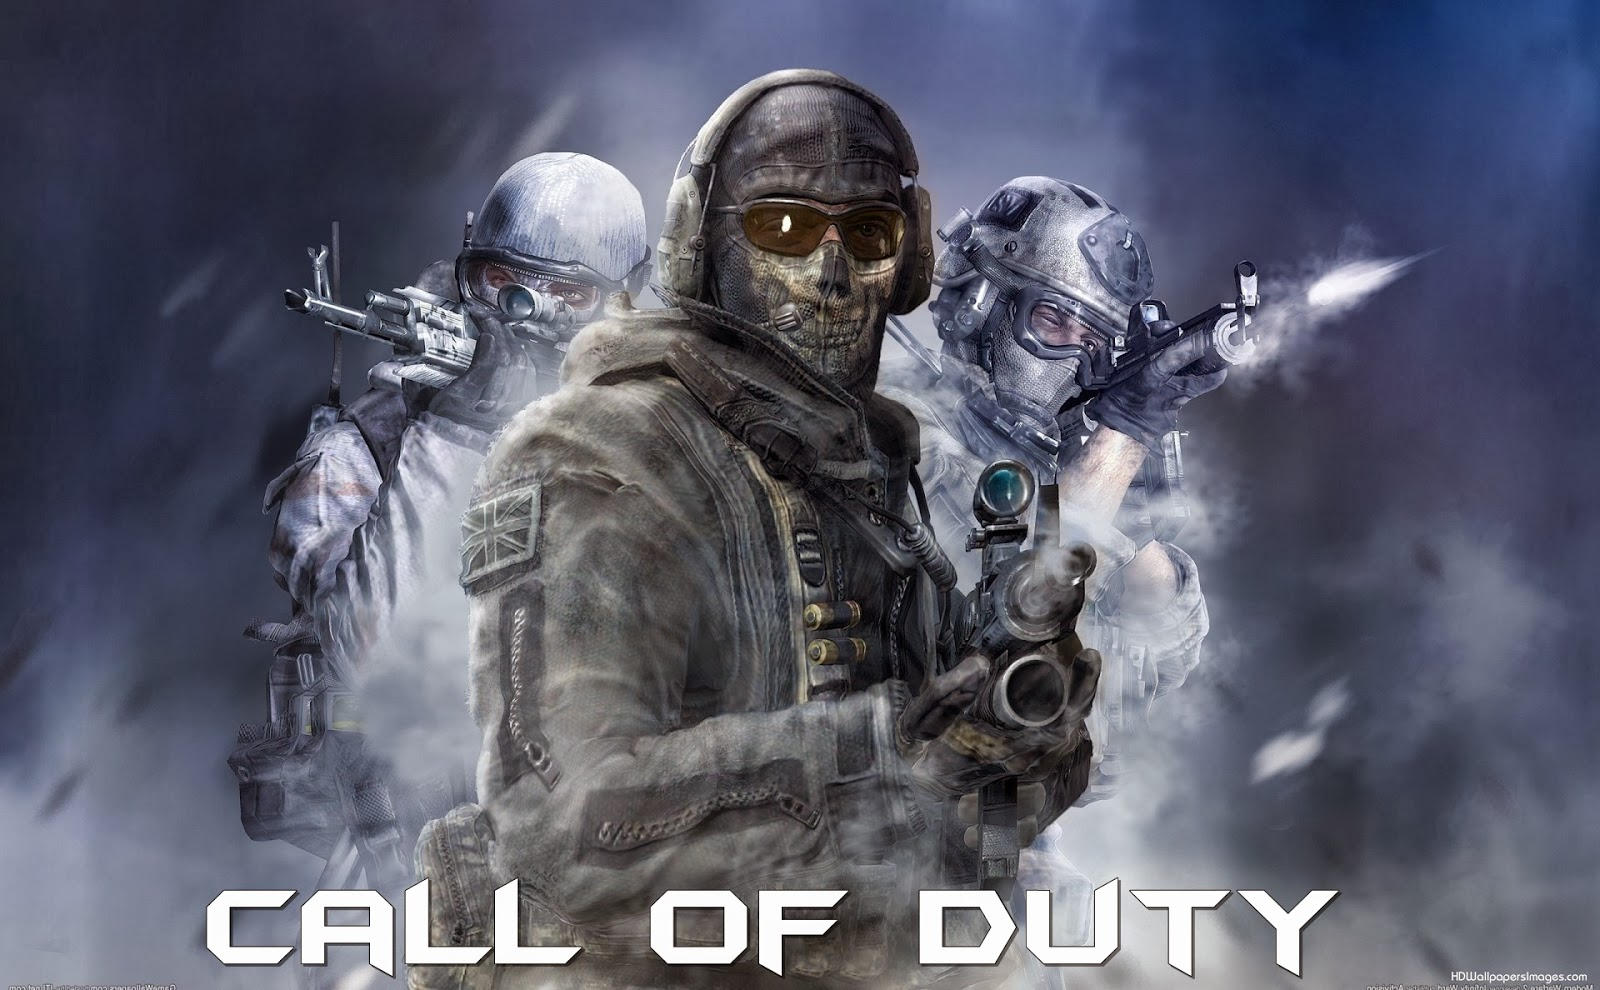 Call of Duty®: Ghosts full game on PS4 | Official ...